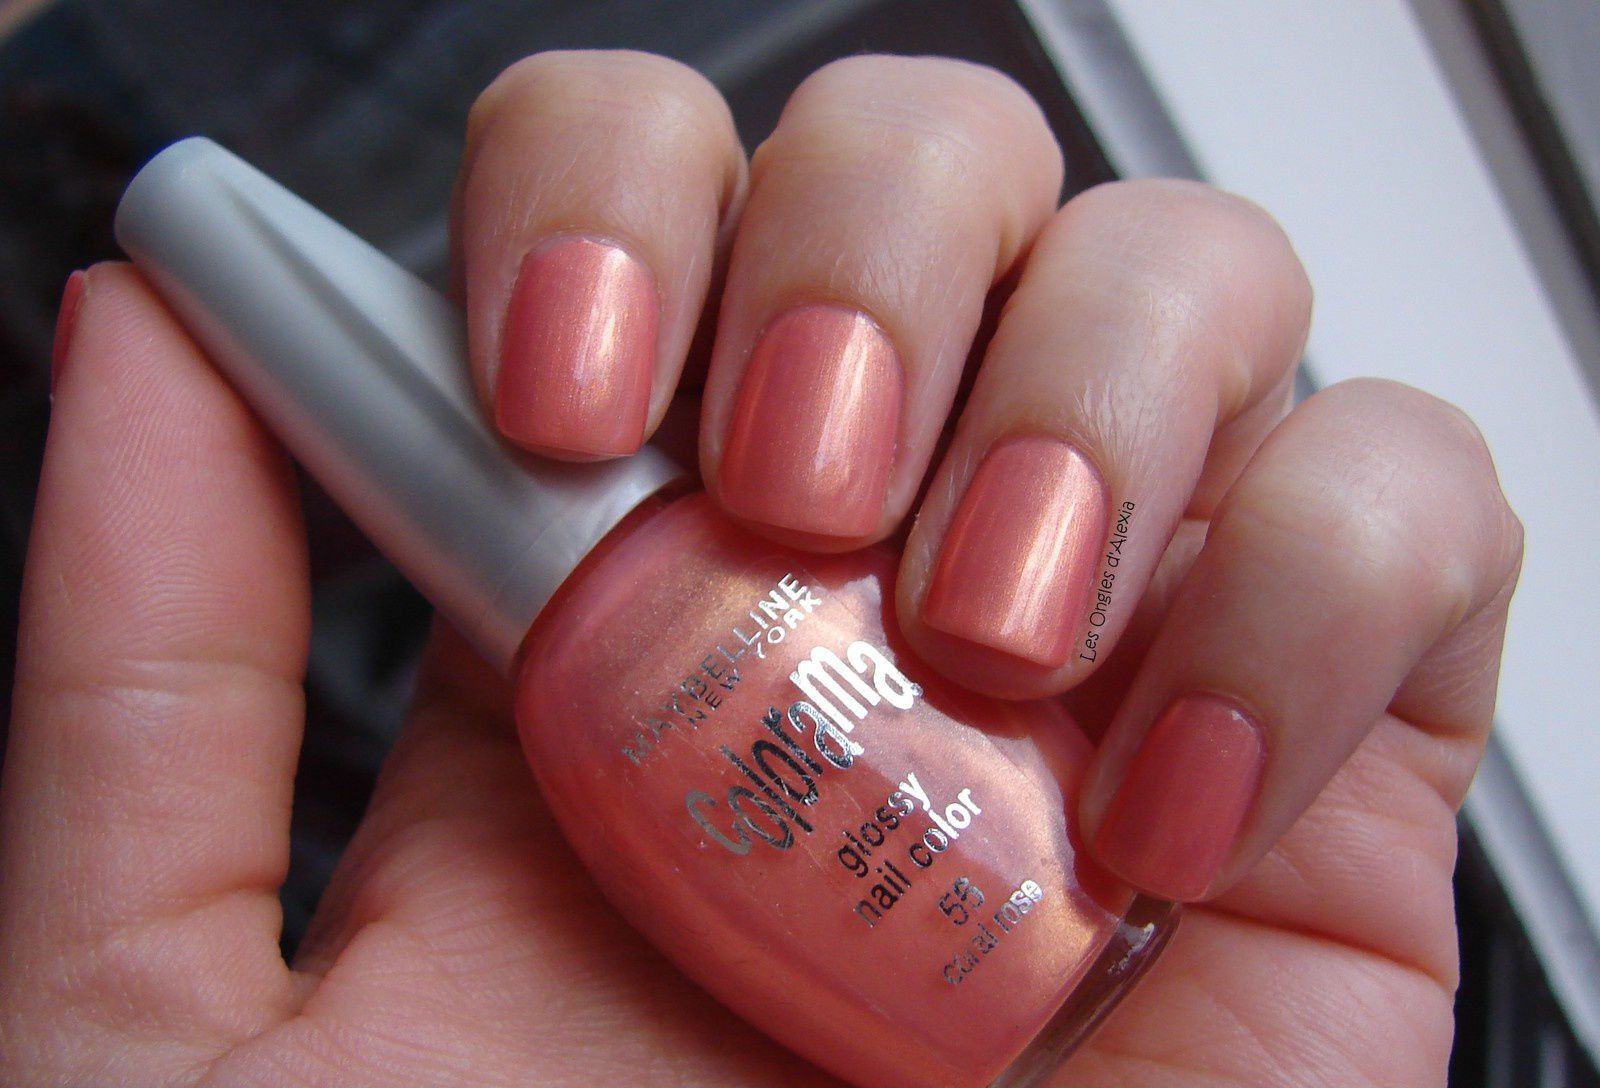 Maybelline Colorama n°56 - Coral Rose (ombre)